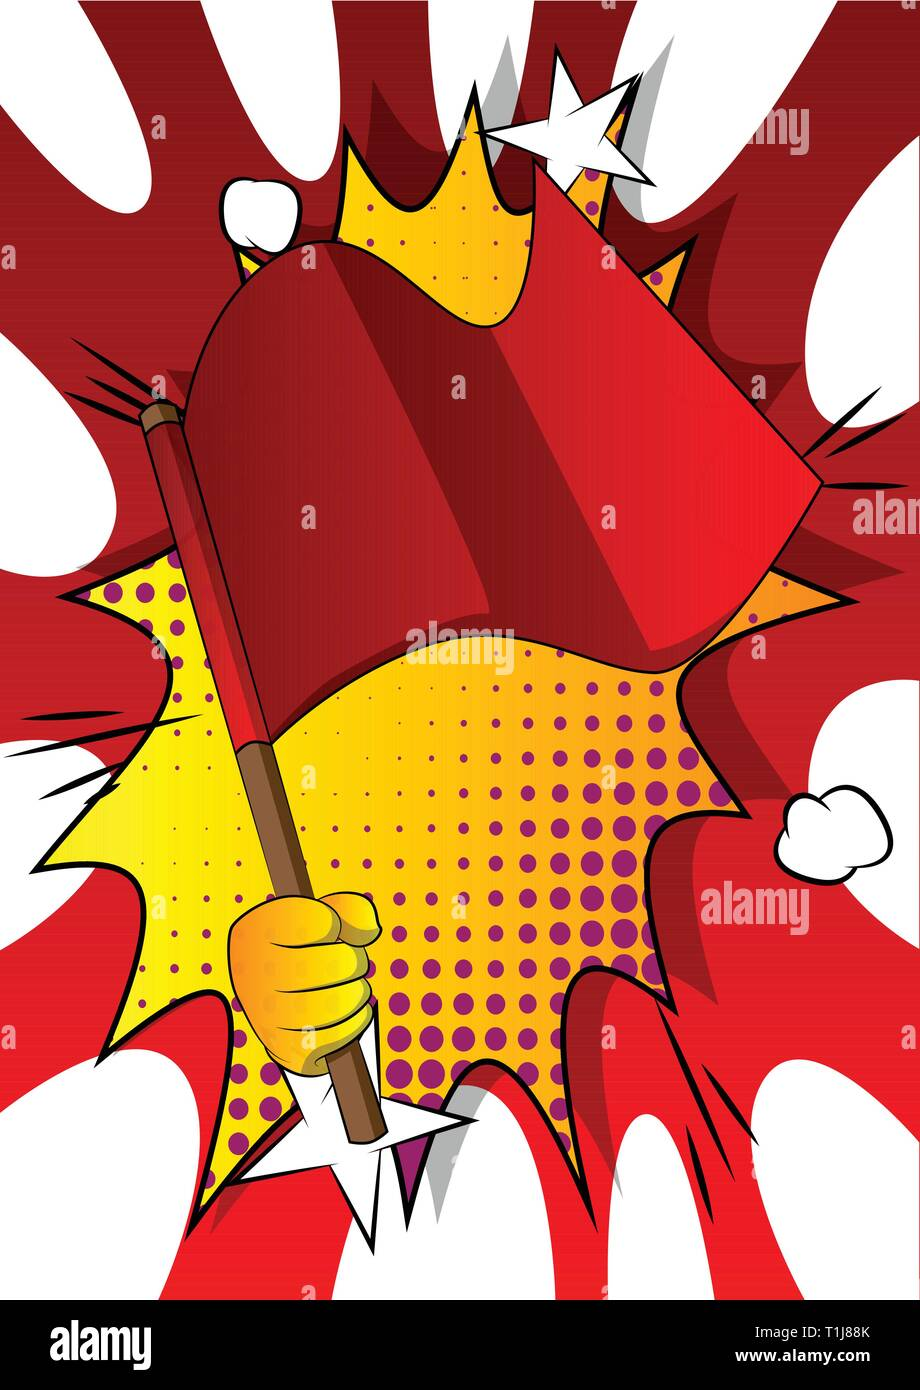 Vector cartoon hand holding a flag. Illustrated hand on comic book background. - Stock Vector